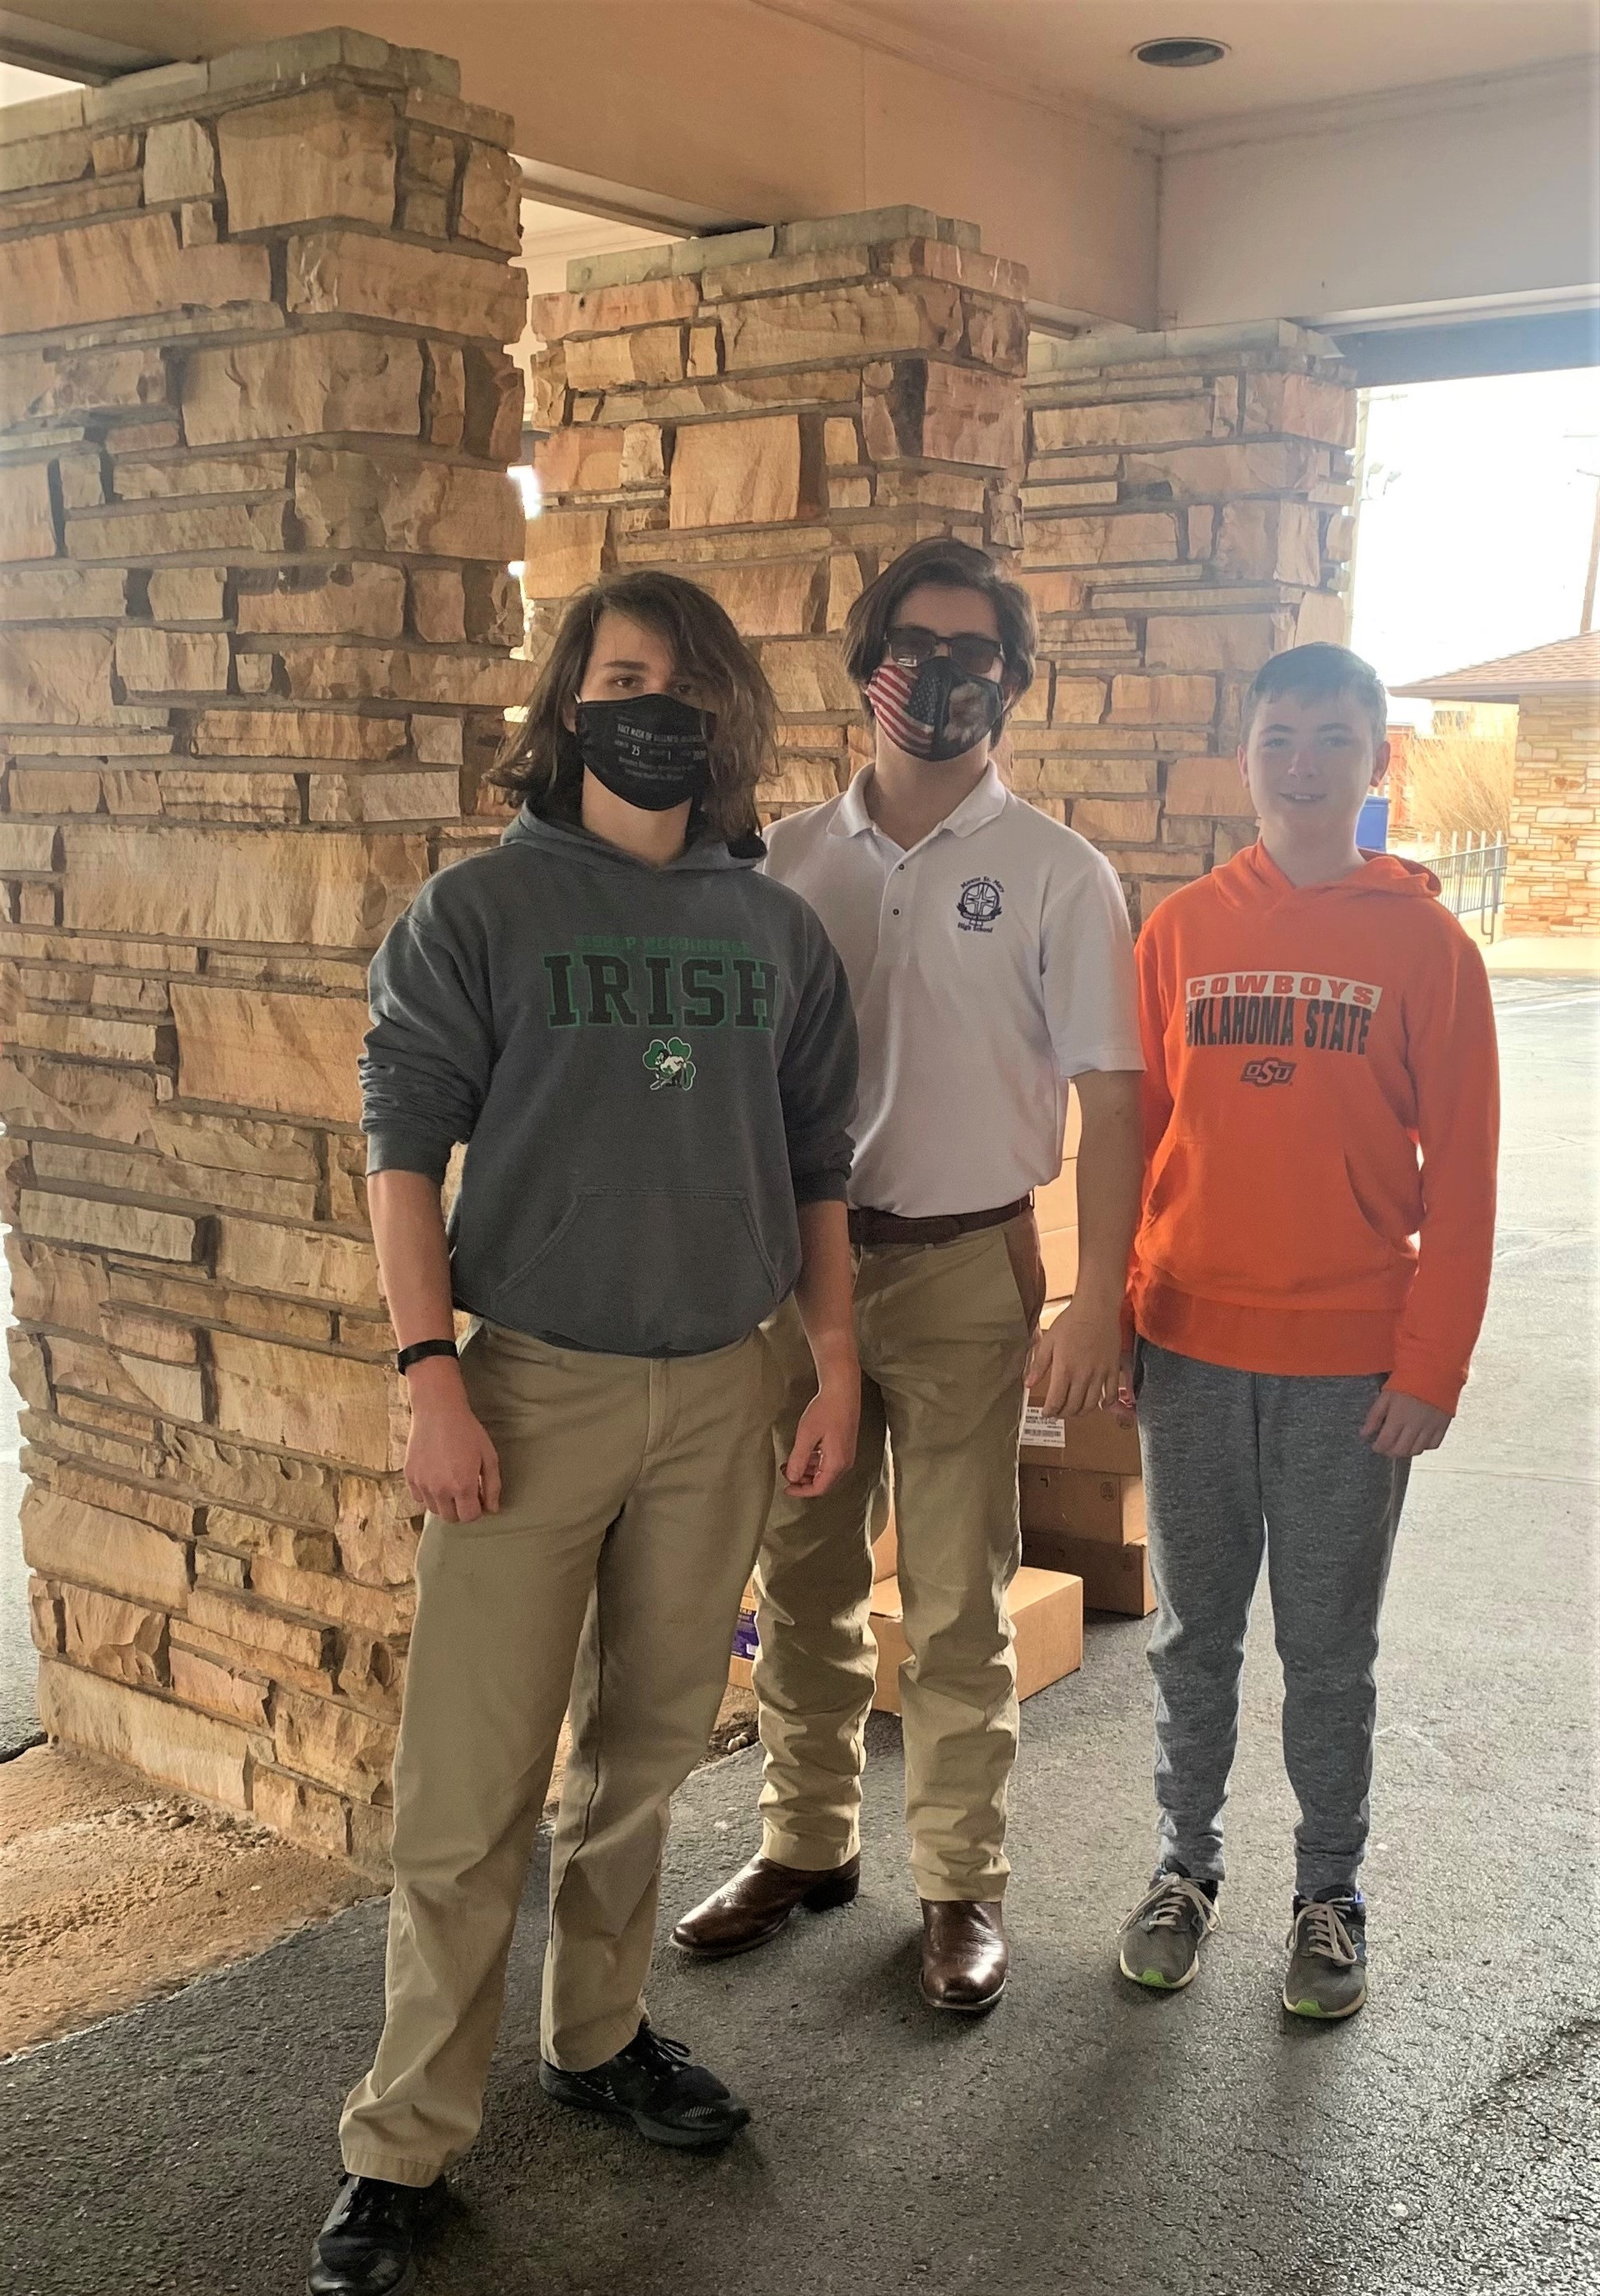 The two guys in the masks are in our Youth Group